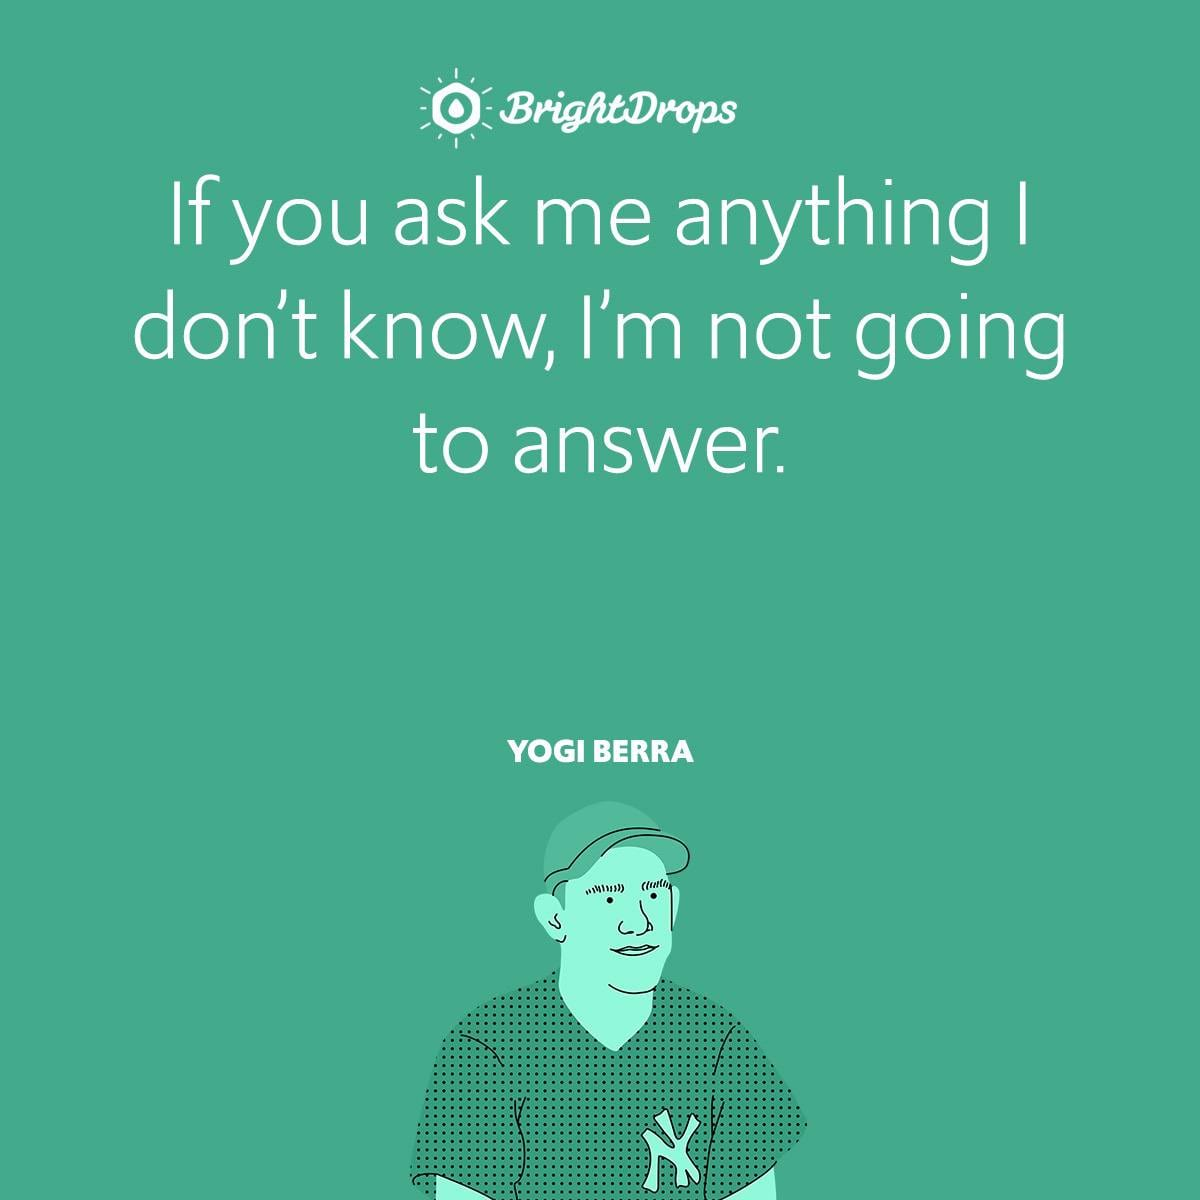 If you ask me anything I don't know, I'm not going to answer.